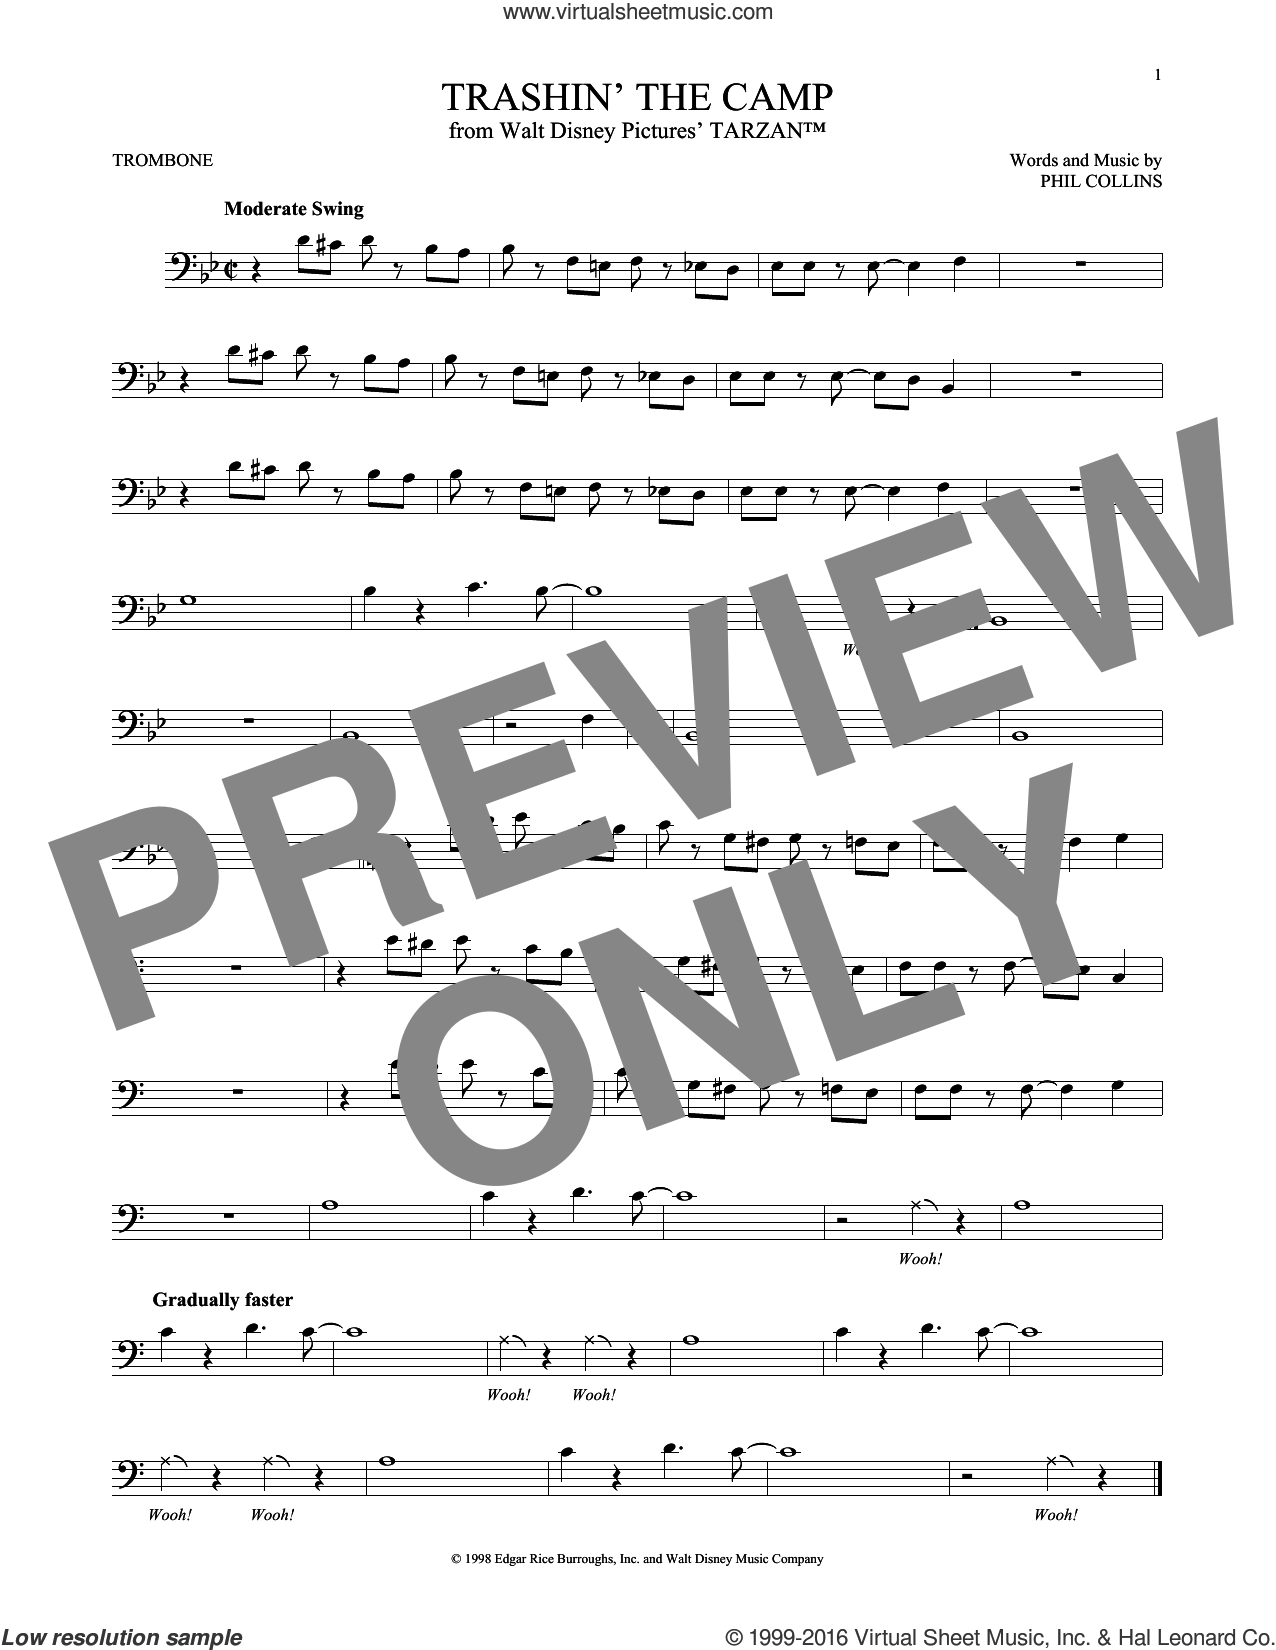 Trashin' The Camp sheet music for trombone solo by Phil Collins, intermediate skill level